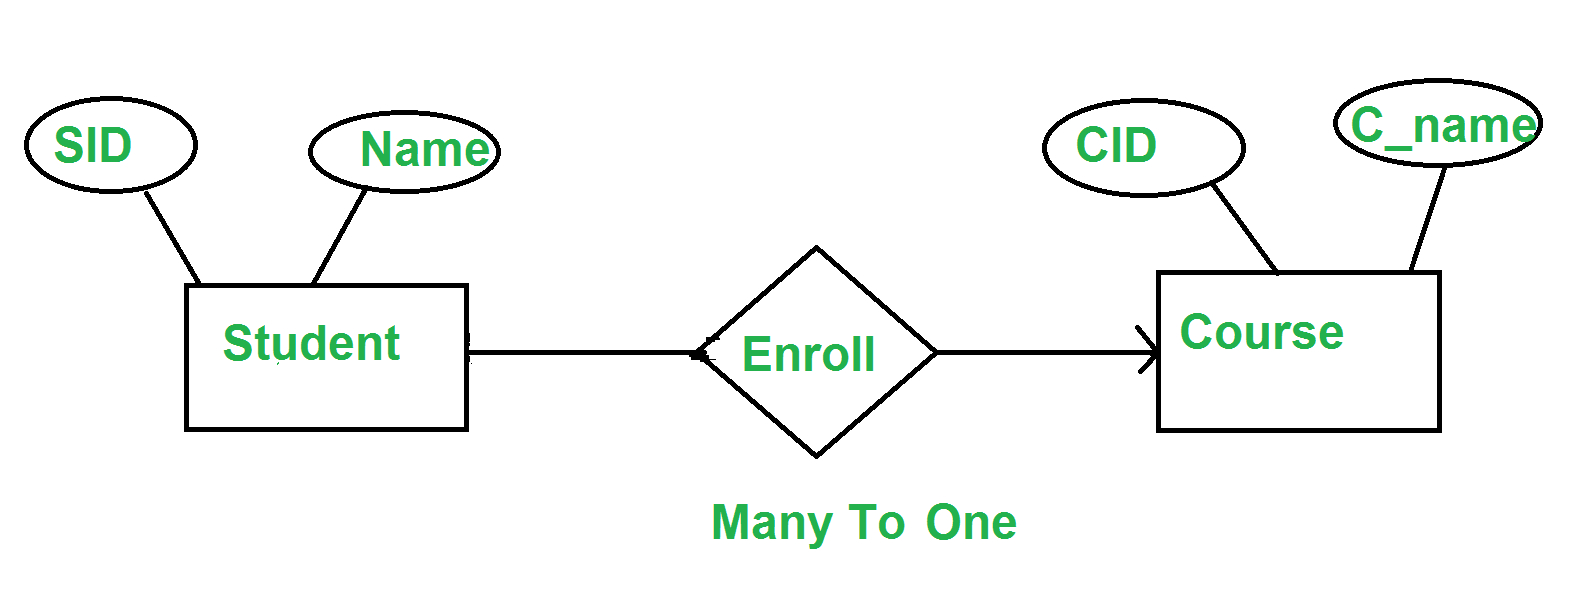 Er Diagram One To Many - 13.tierarztpraxis-Ruffy.de • pertaining to One To Many Er Diagram Examples